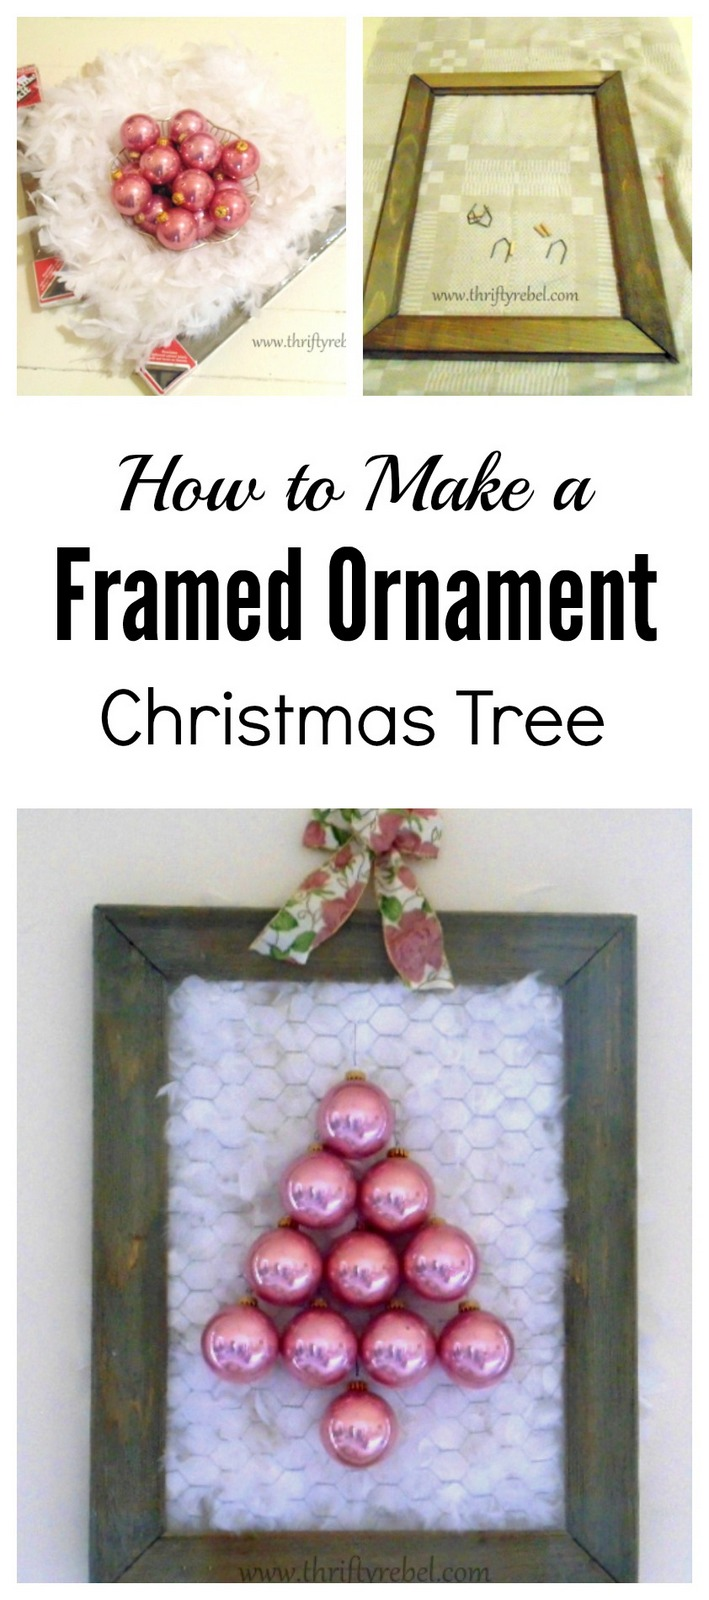 How to make a framed ornament Christmas tree